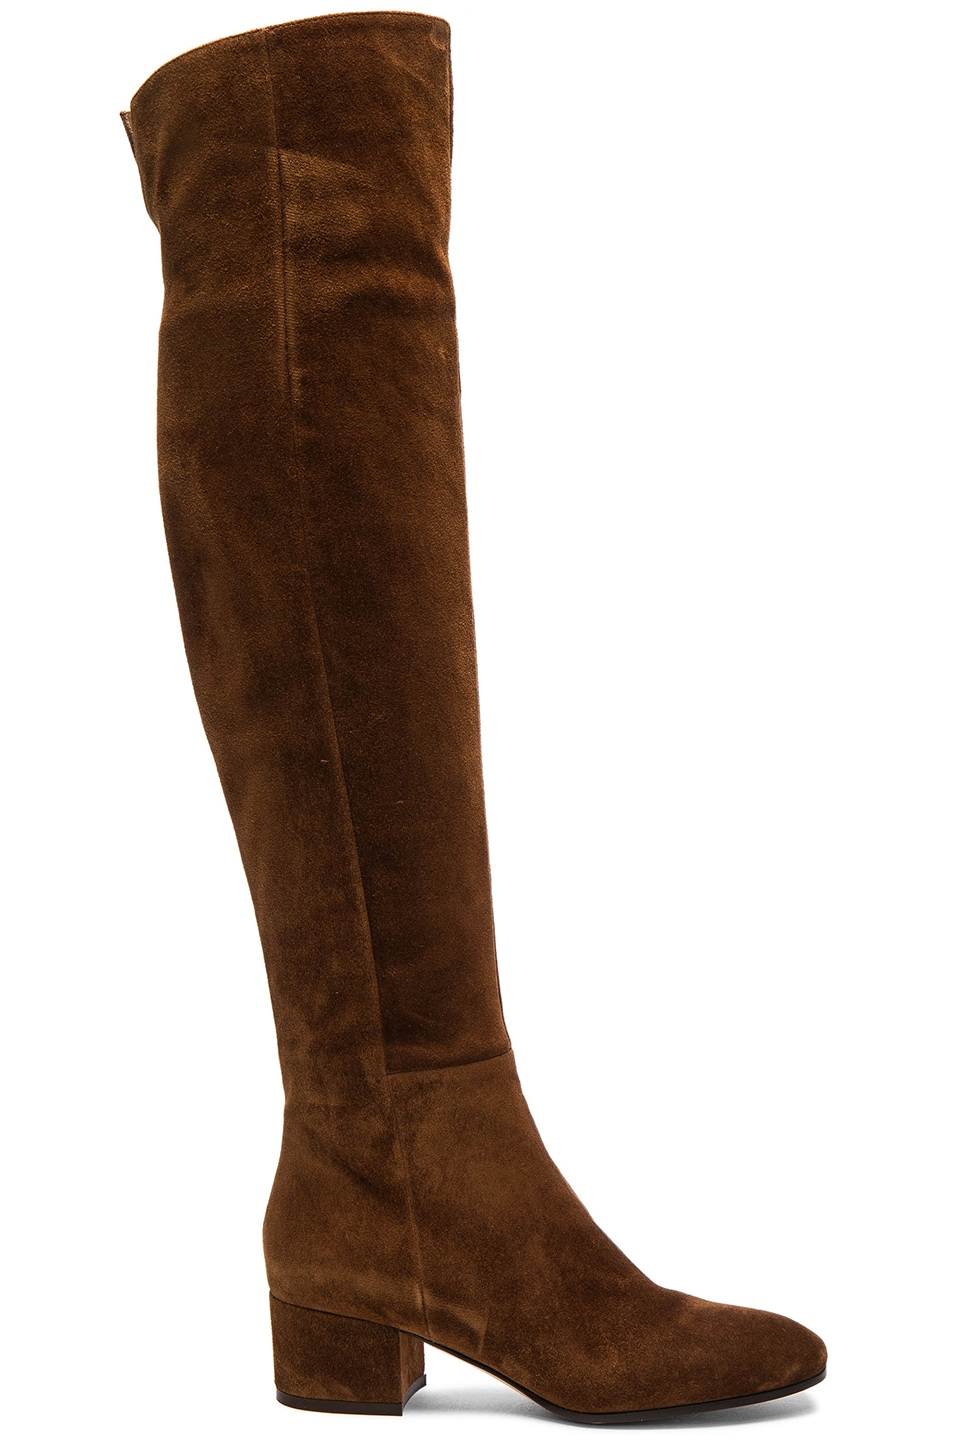 Image 1 of Gianvito Rossi Suede Over The Knee Boots in Texas